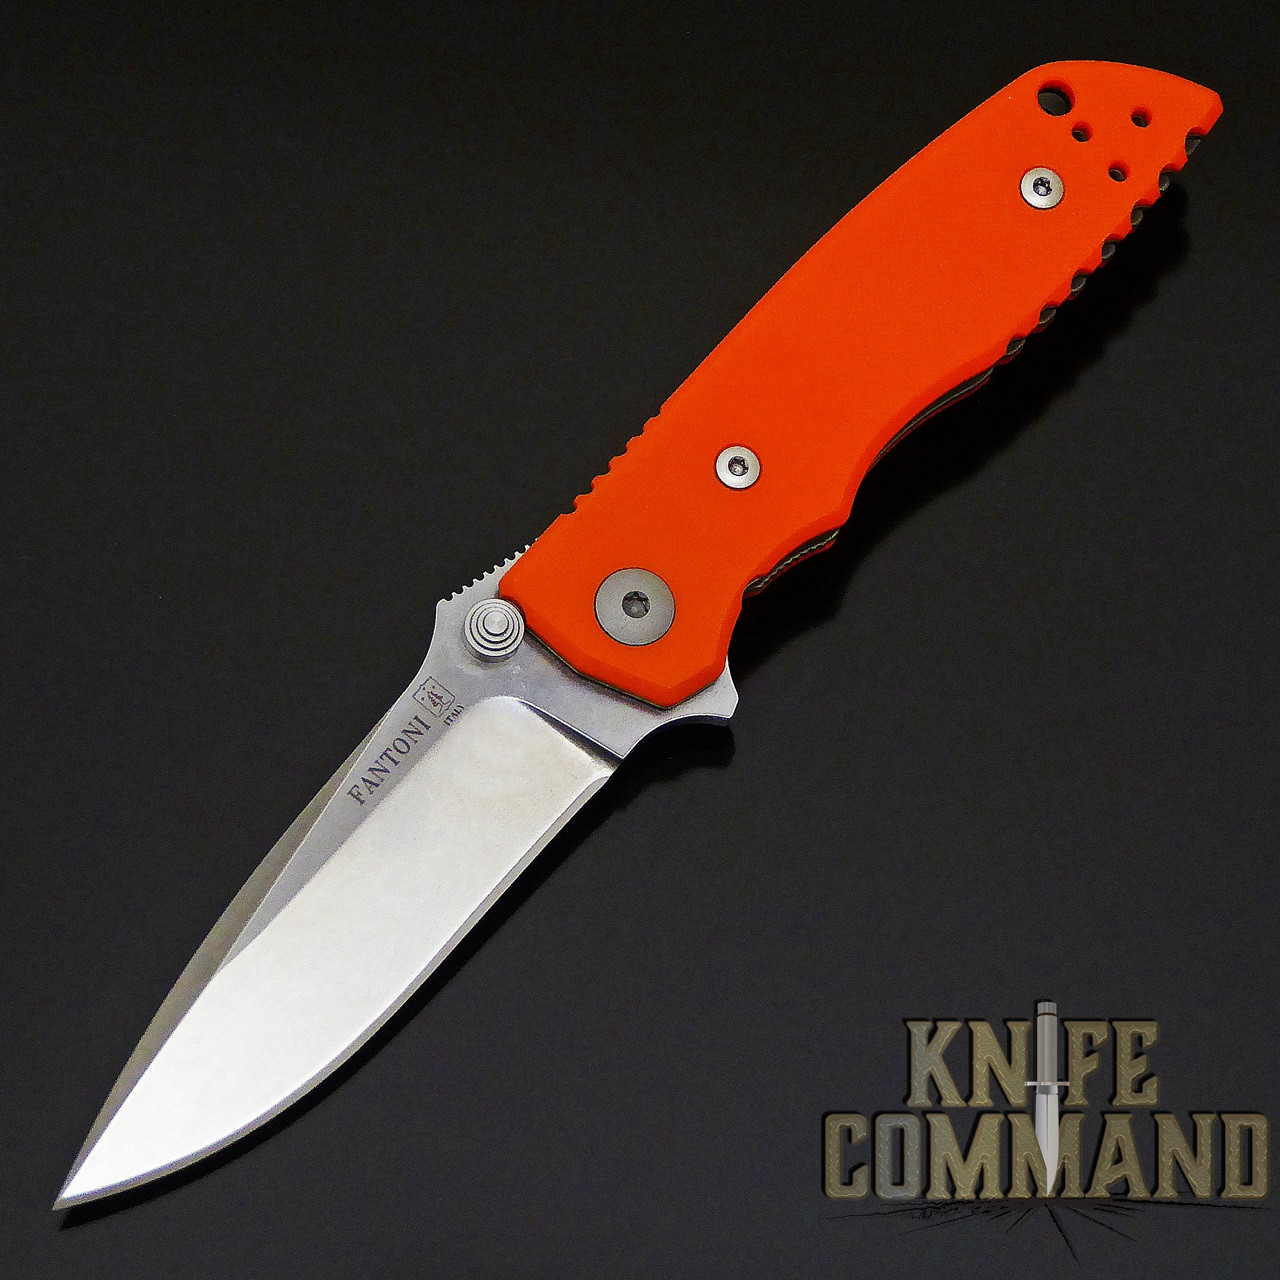 Fantoni HB 03 M390 William Harsey Combat Folder Tactical Knife Blaze Orange.  Bohler M390 Microclean stainless steel blade.